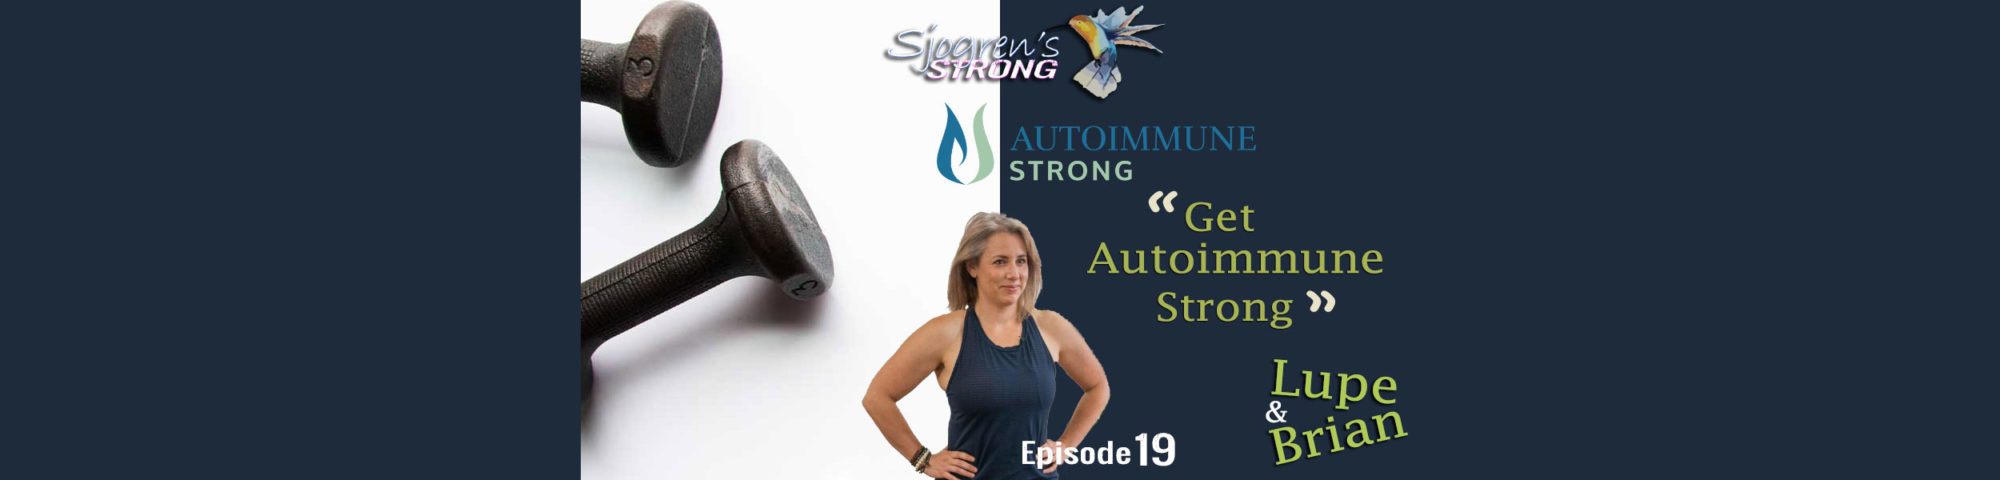 Get Autoimmune Strong with Andrea, Episode 19 of Sjogren's Strong